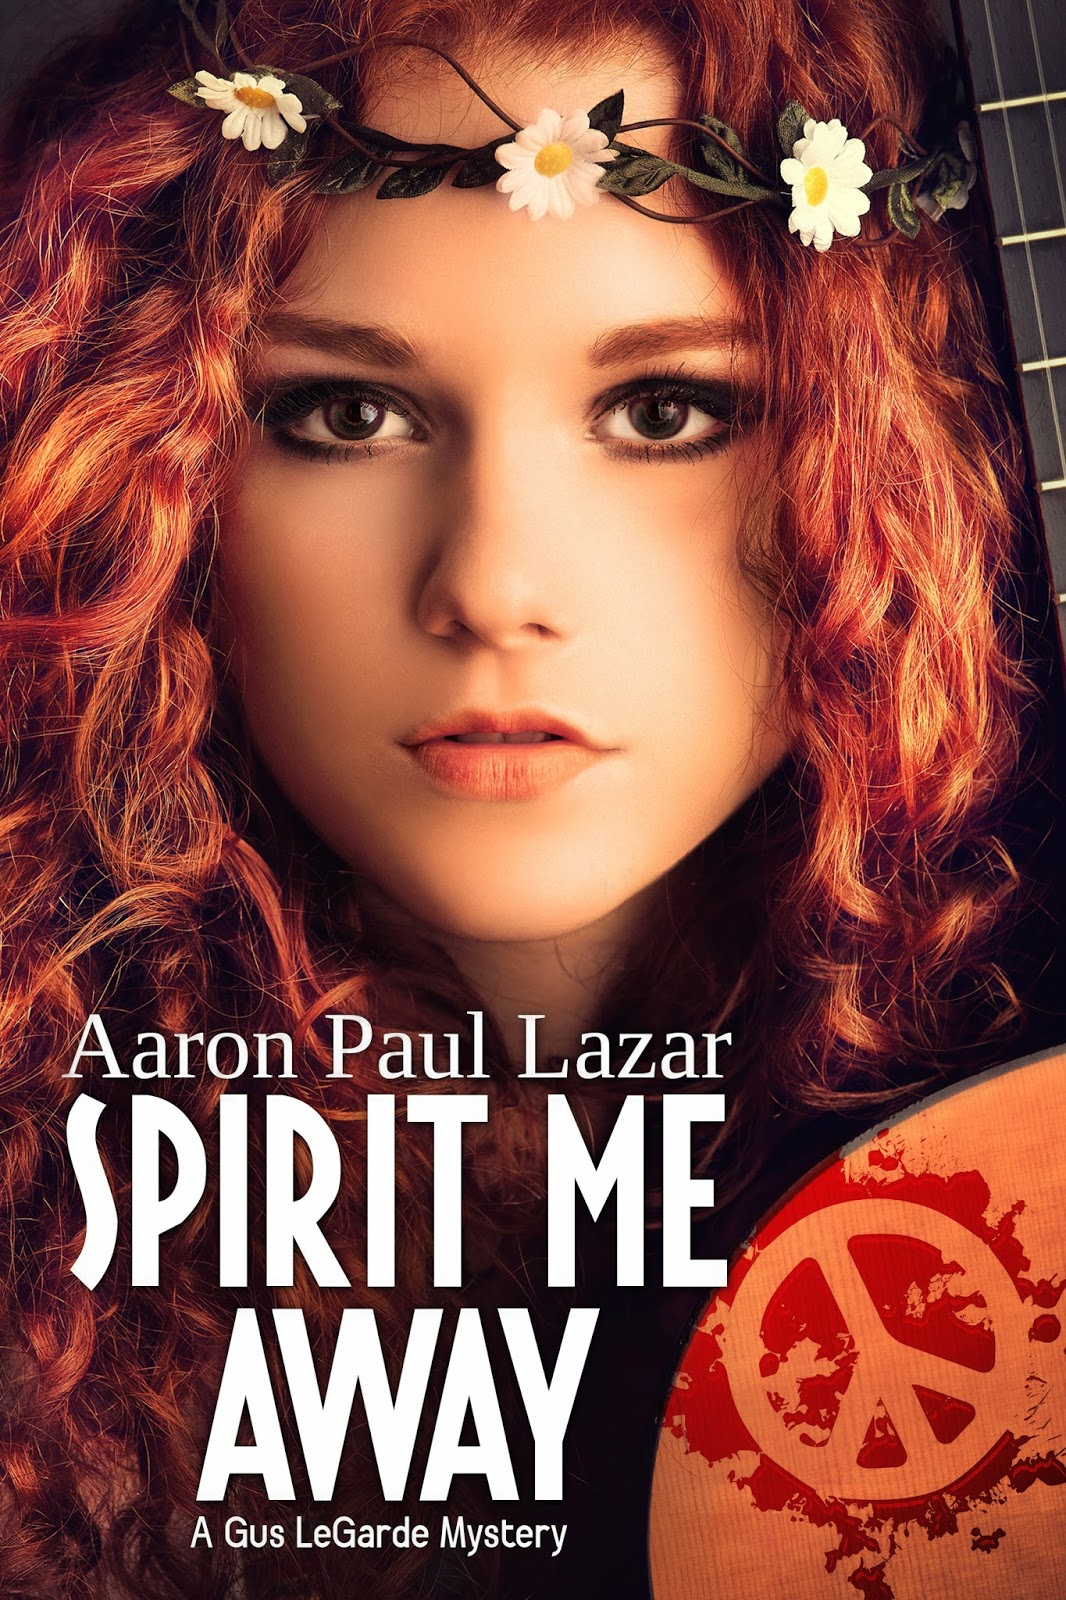 http://www.amazon.com/Spirit-Me-Away-LeGarde-Mysteries-ebook/dp/B00K7RA8QW/ref=sr_1_2?s=digital-text&ie=UTF8&qid=1399907004&sr=1-2&keywords=spirit+me+away